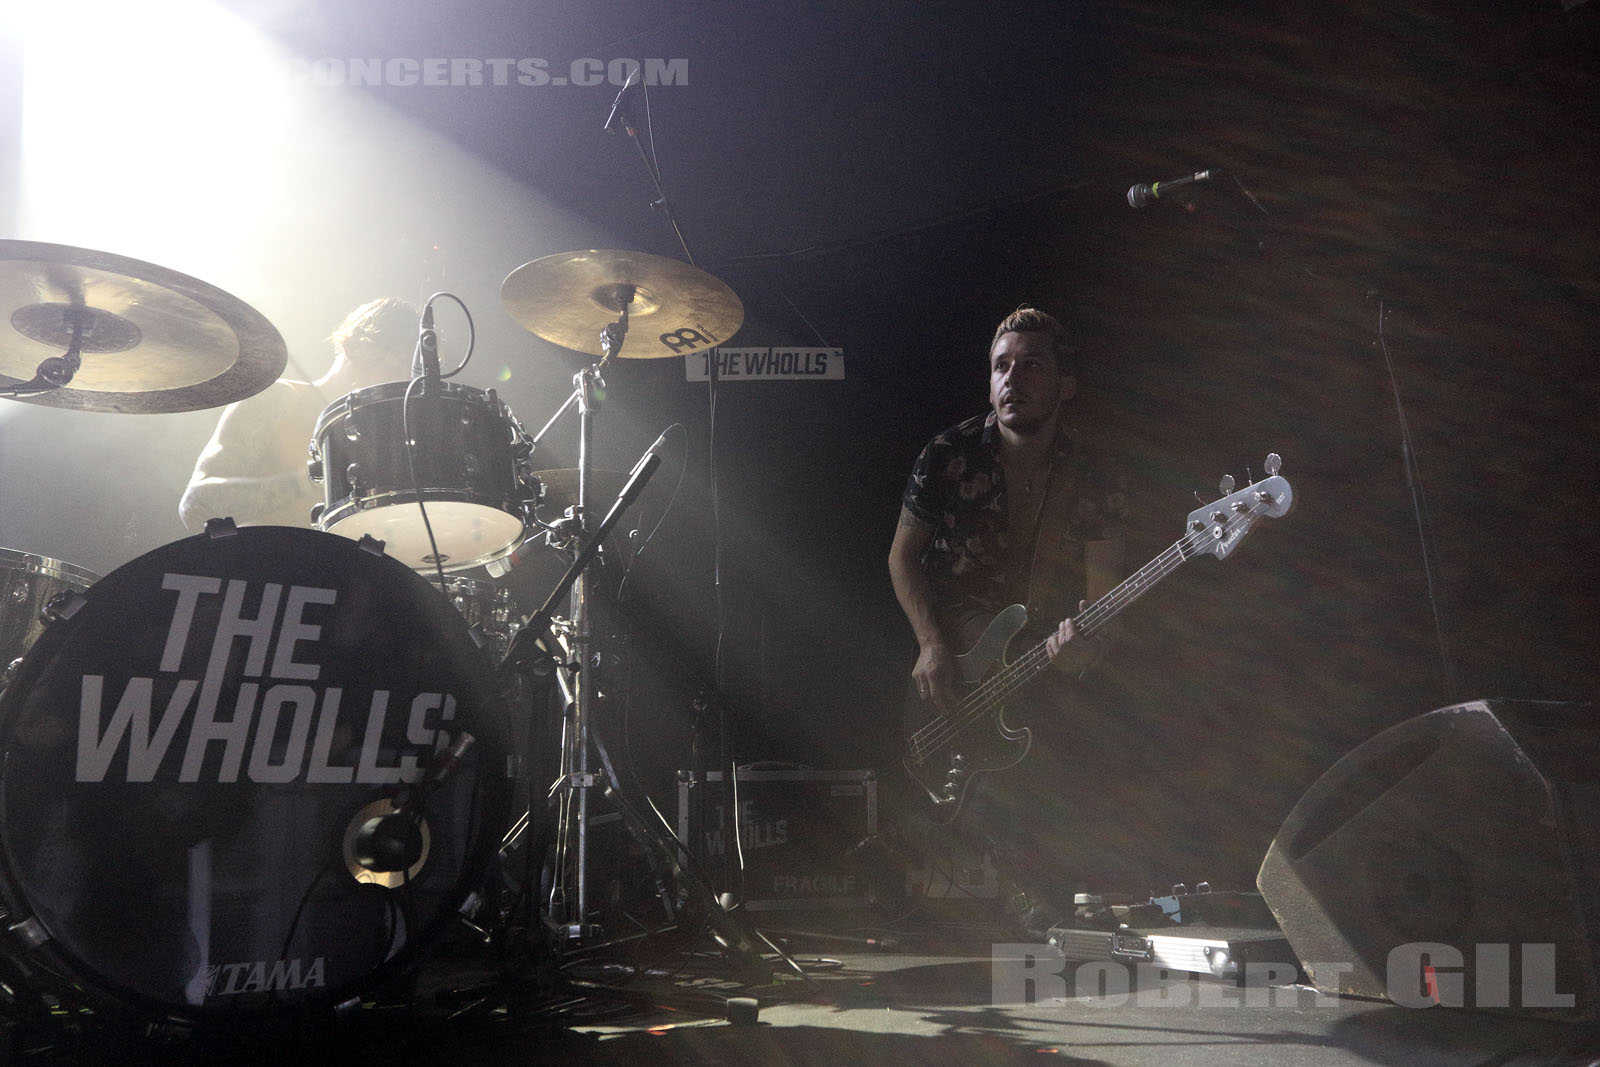 THE WHOLLS - 2017-03-08 - PARIS - Trabendo